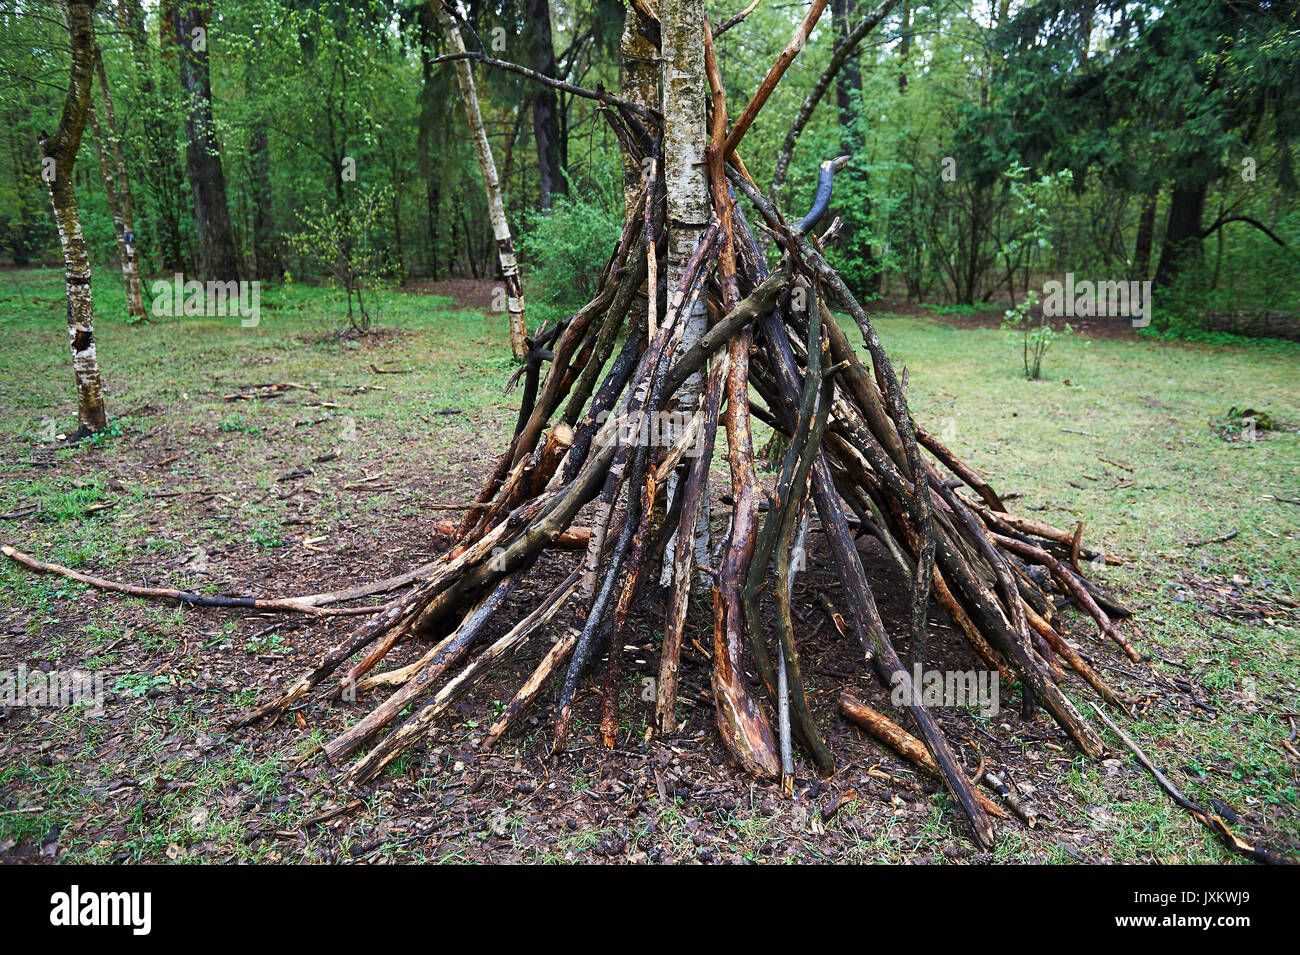 A hut of twigs in the forest. Nature, survival, the laws of life - Stock Image